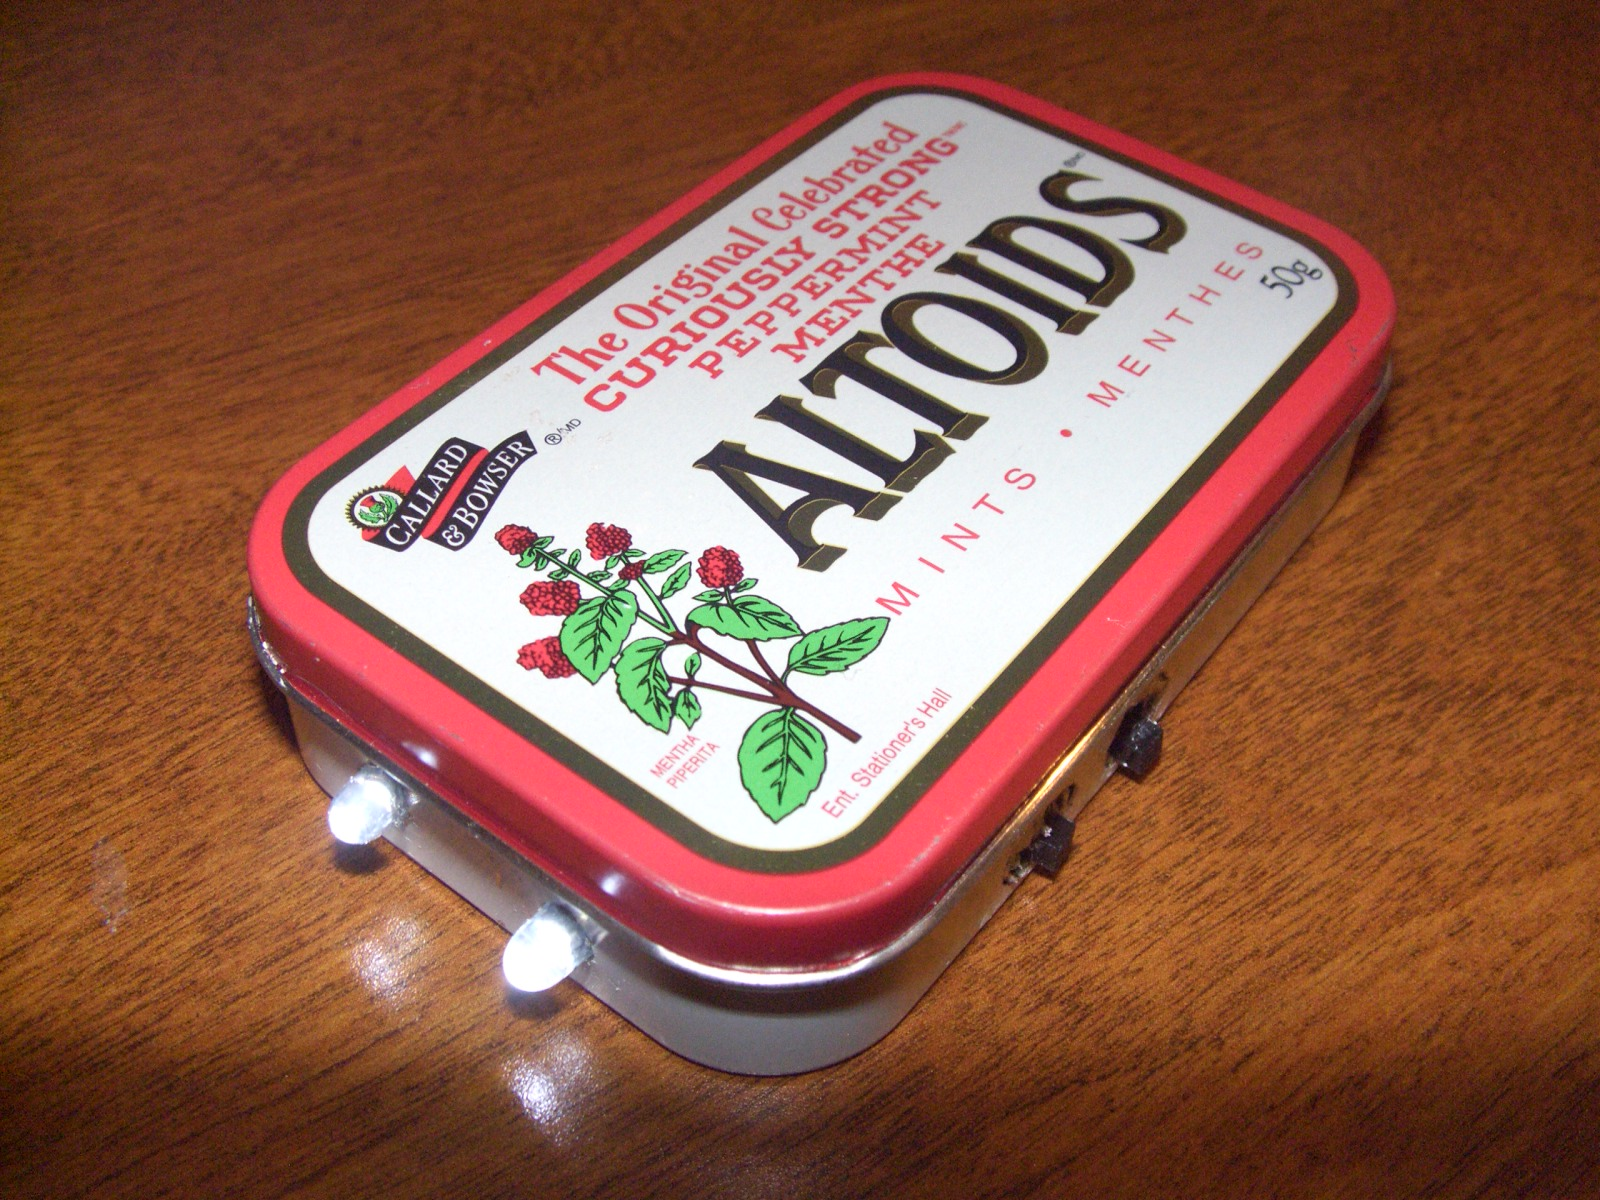 Solar Altoids Flashlight Experiment (SAFE)